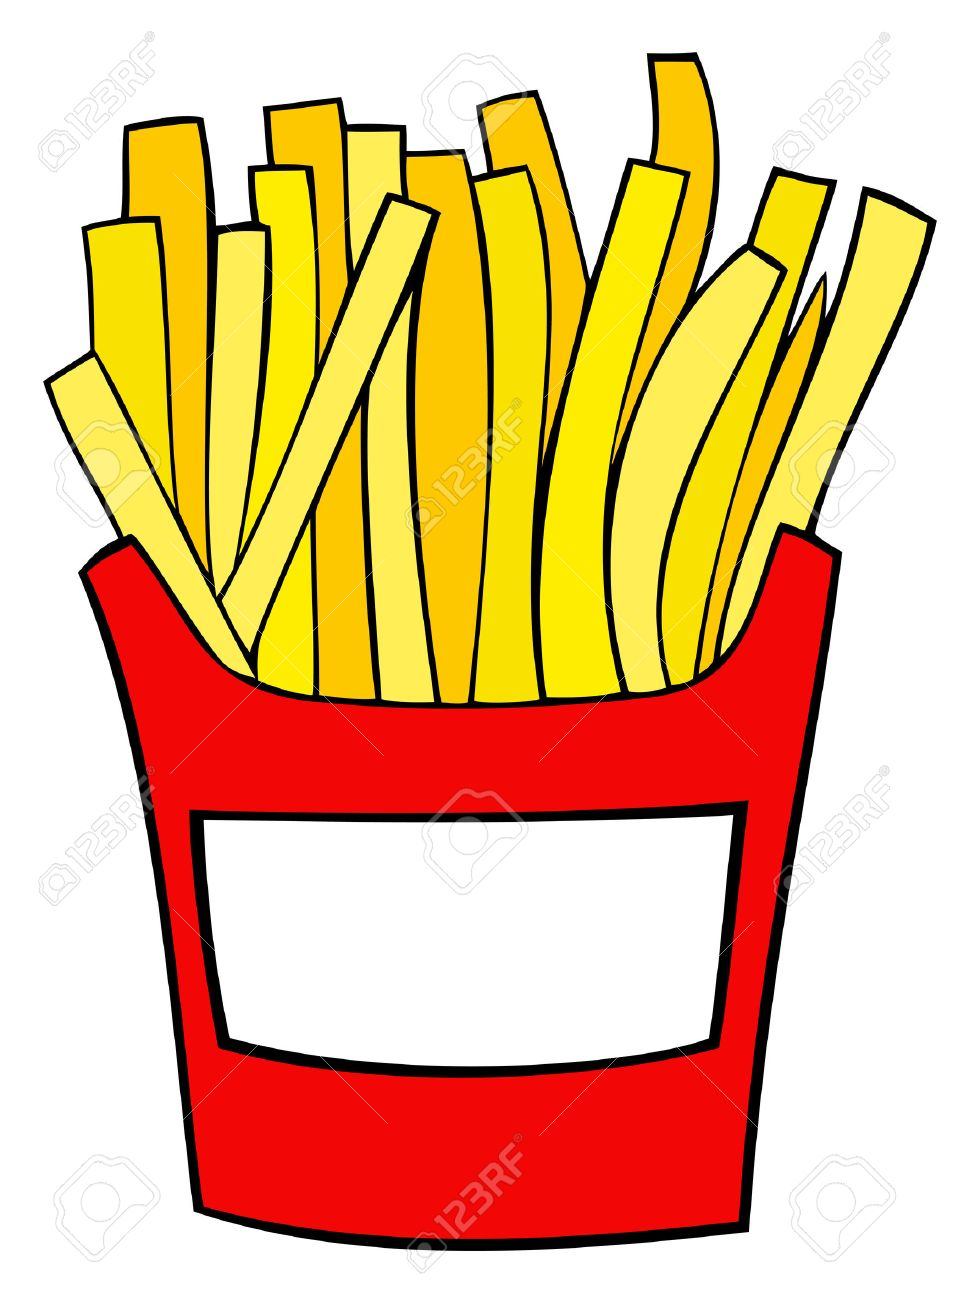 French Fries. Royalty Free Cliparts, Vectors, And Stock ...